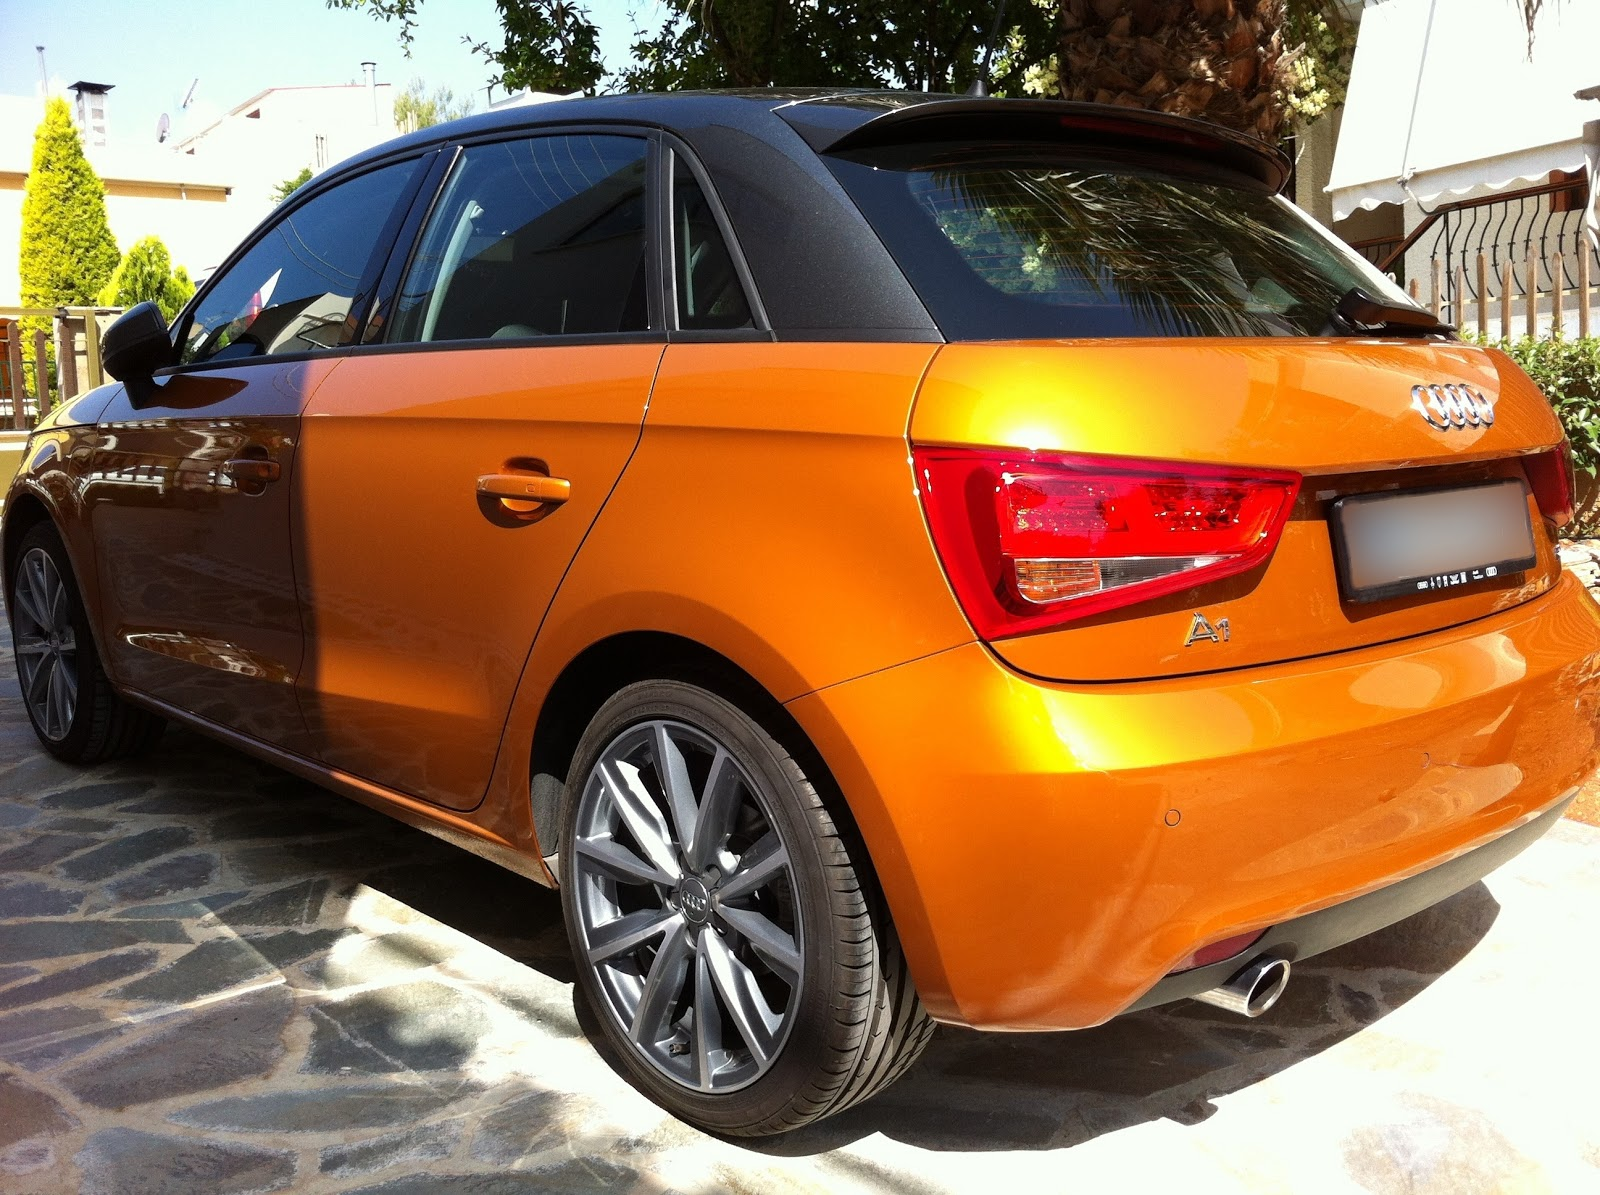 Audi+A1+Samoa+Orange+Daytona+Grey++6.jpg